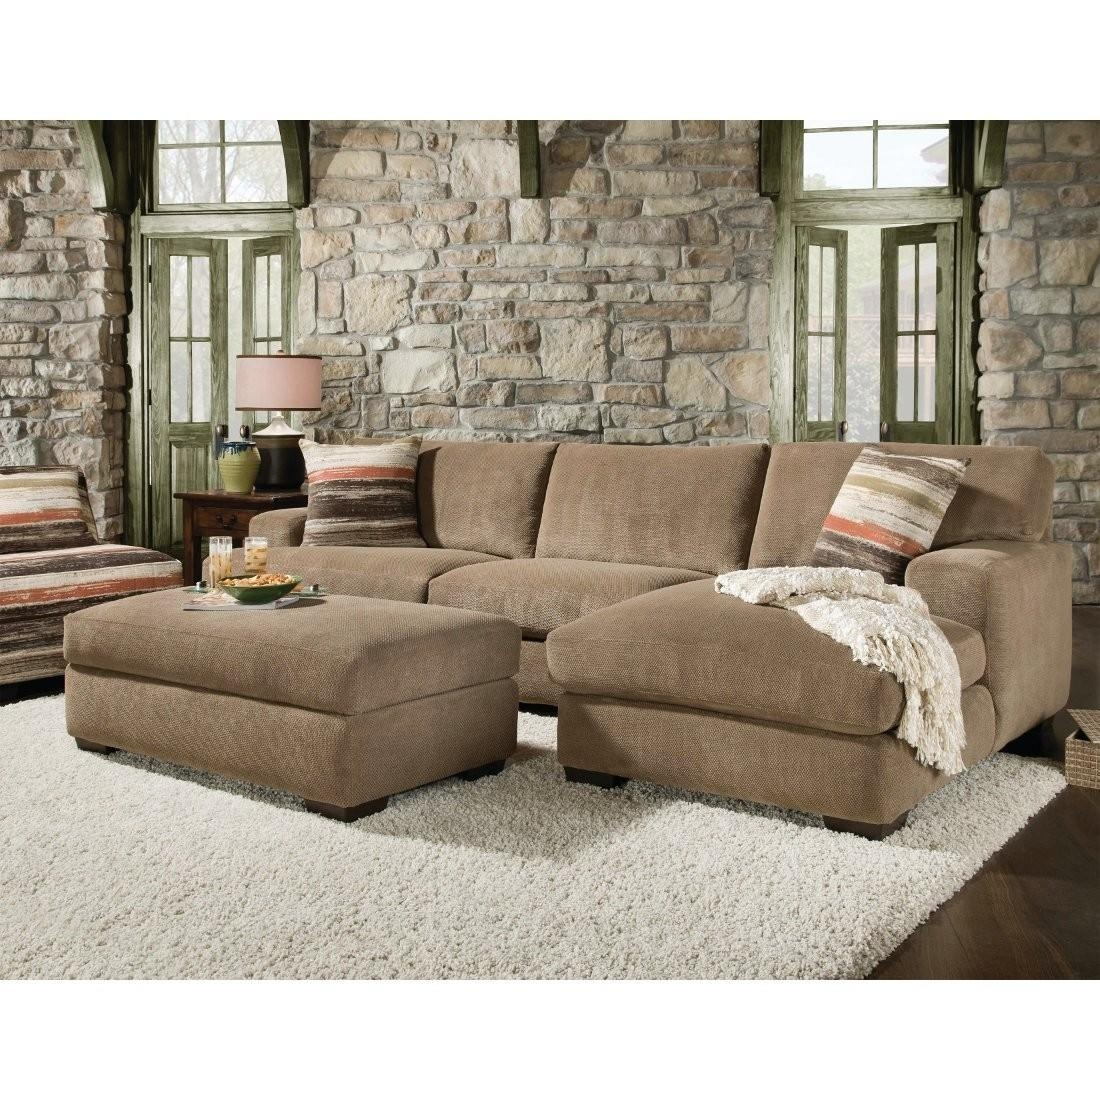 two sofa piece down sectional the choosing room navy couch modular best living